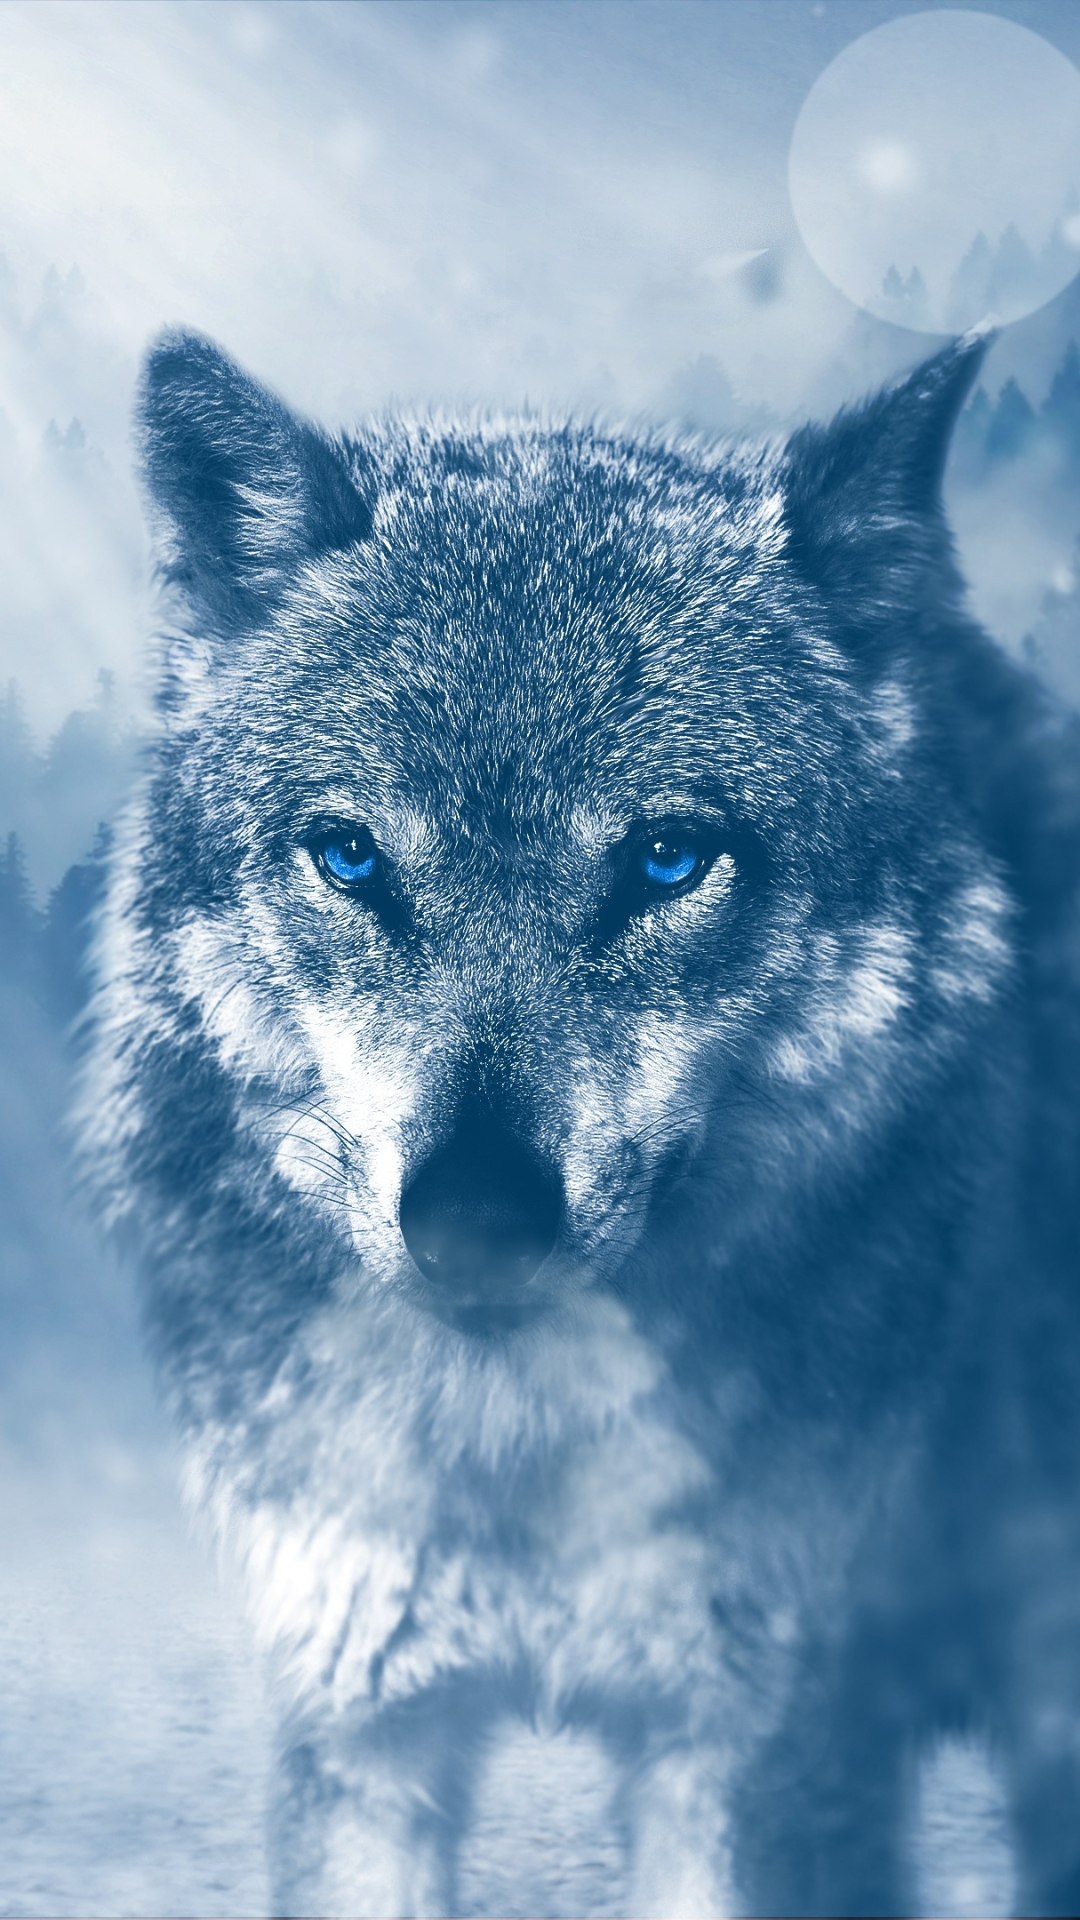 Wolf Live Wallpaper Iphone 7 Kadadaorg